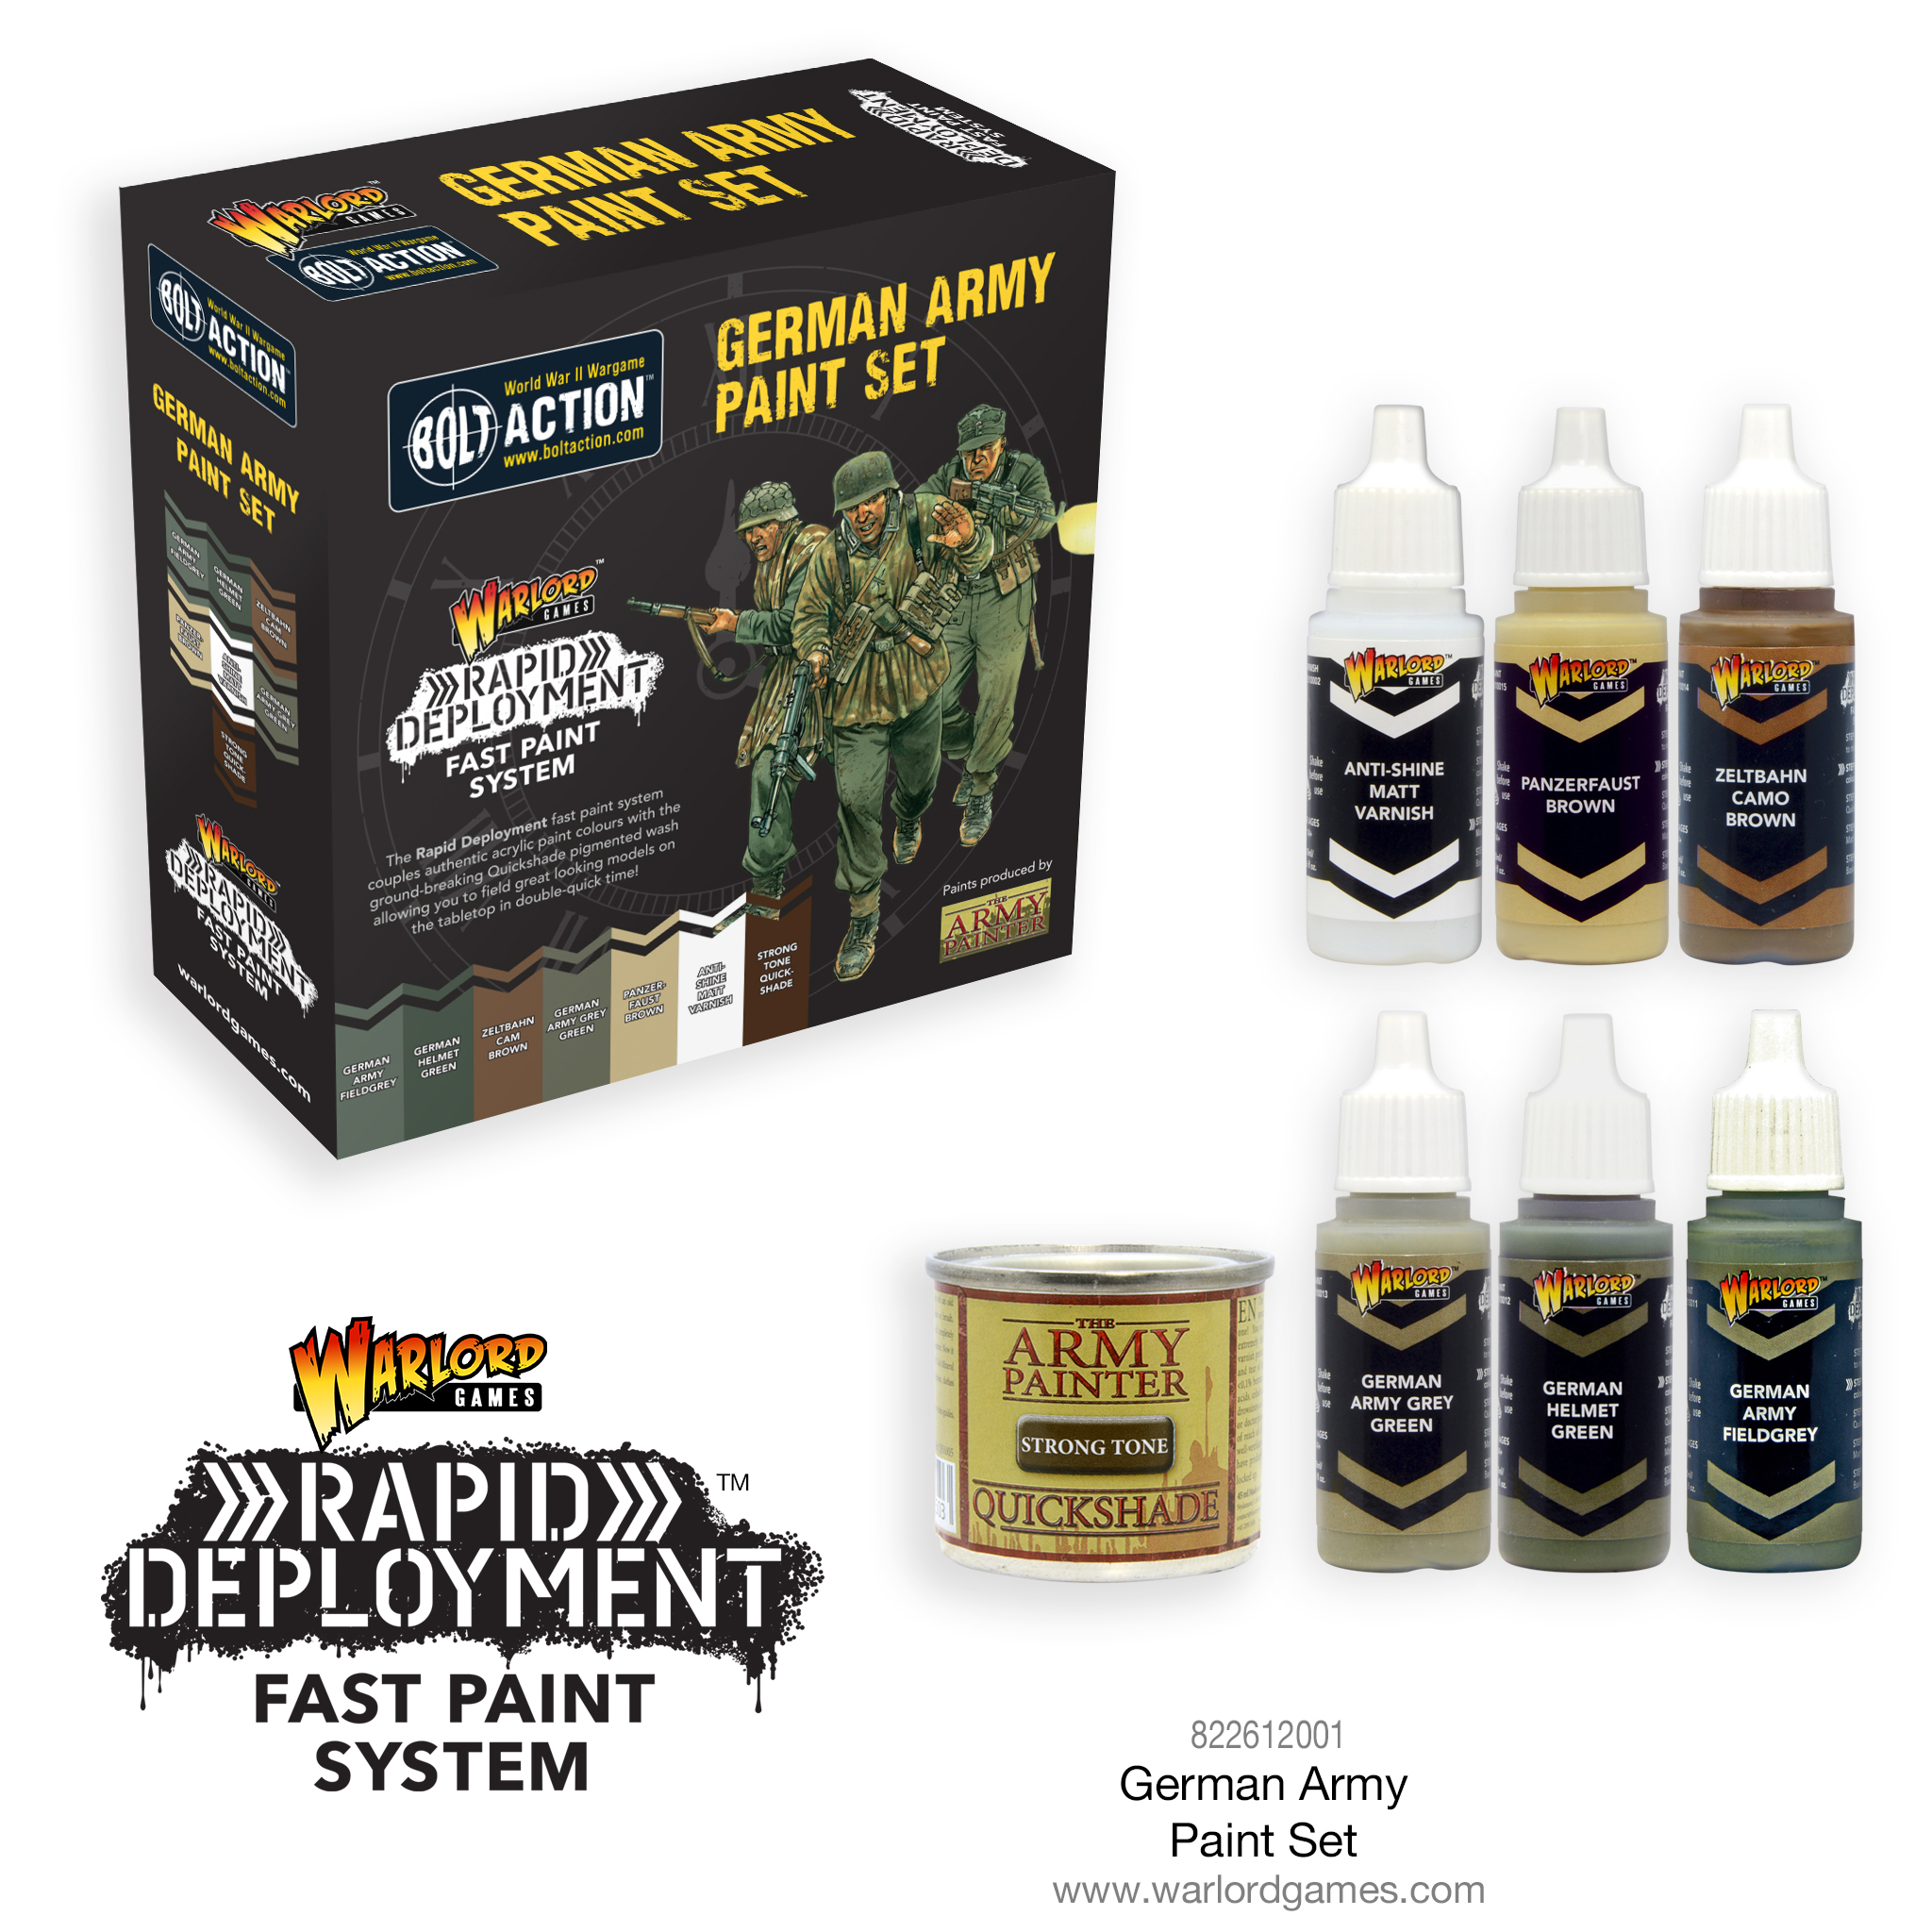 German Army Paint Set